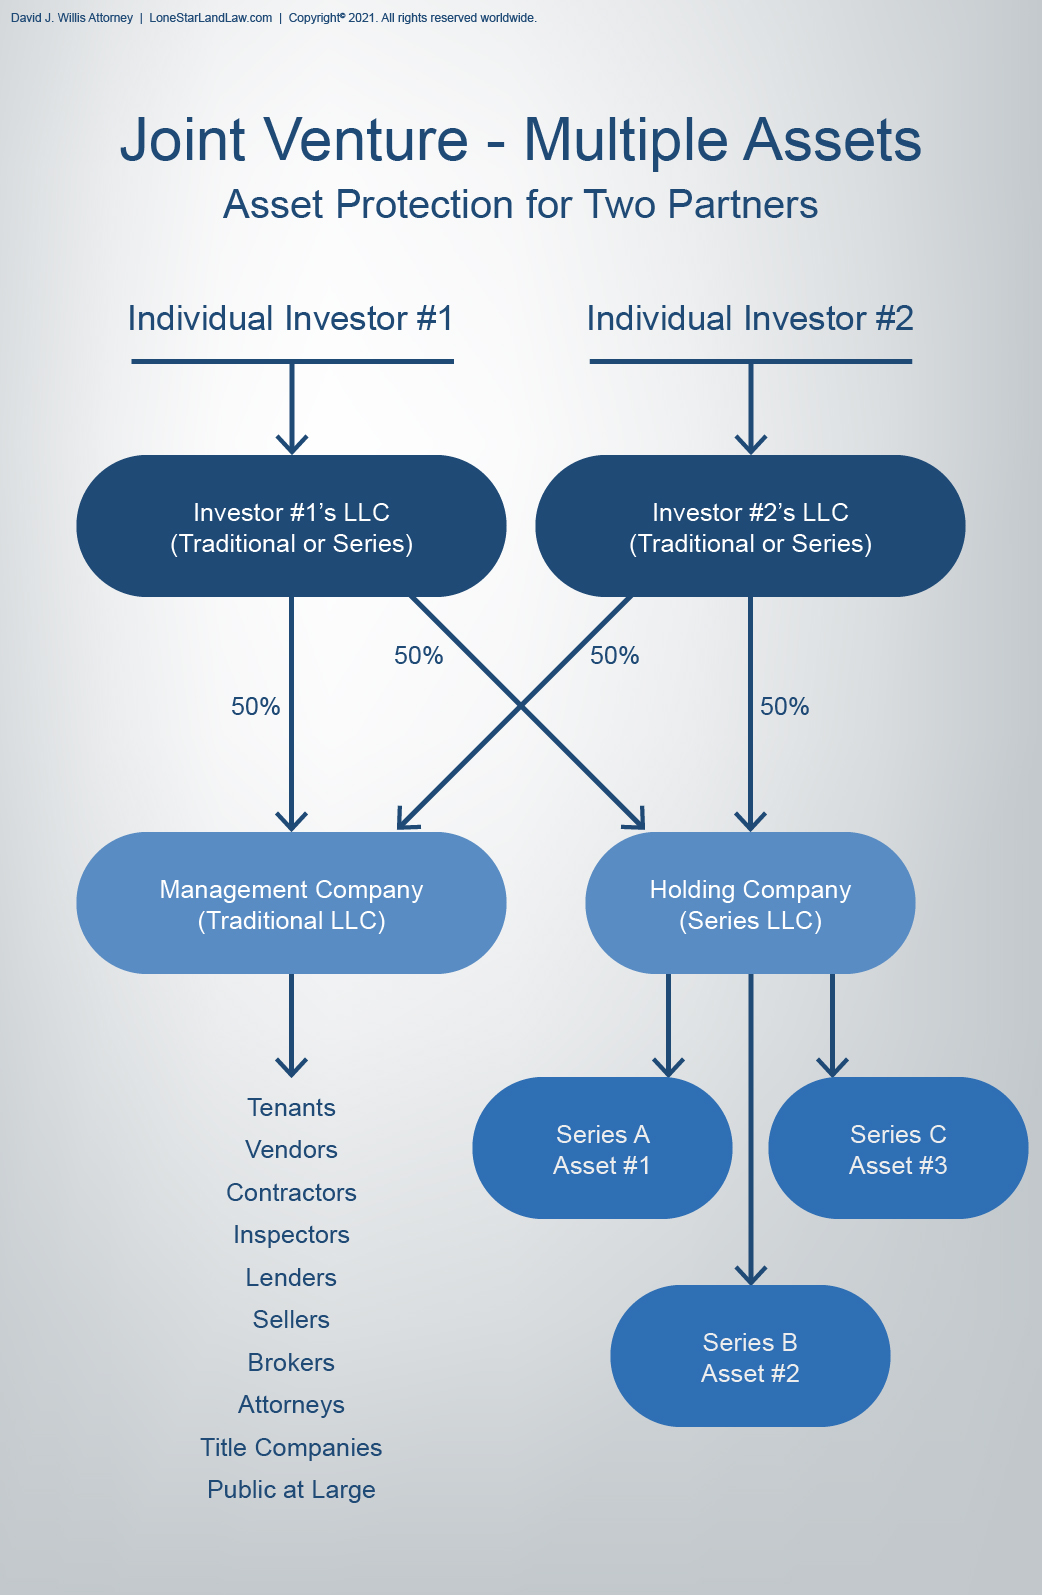 Asset Protection Graphic - Joint Venture with Multiple Assets